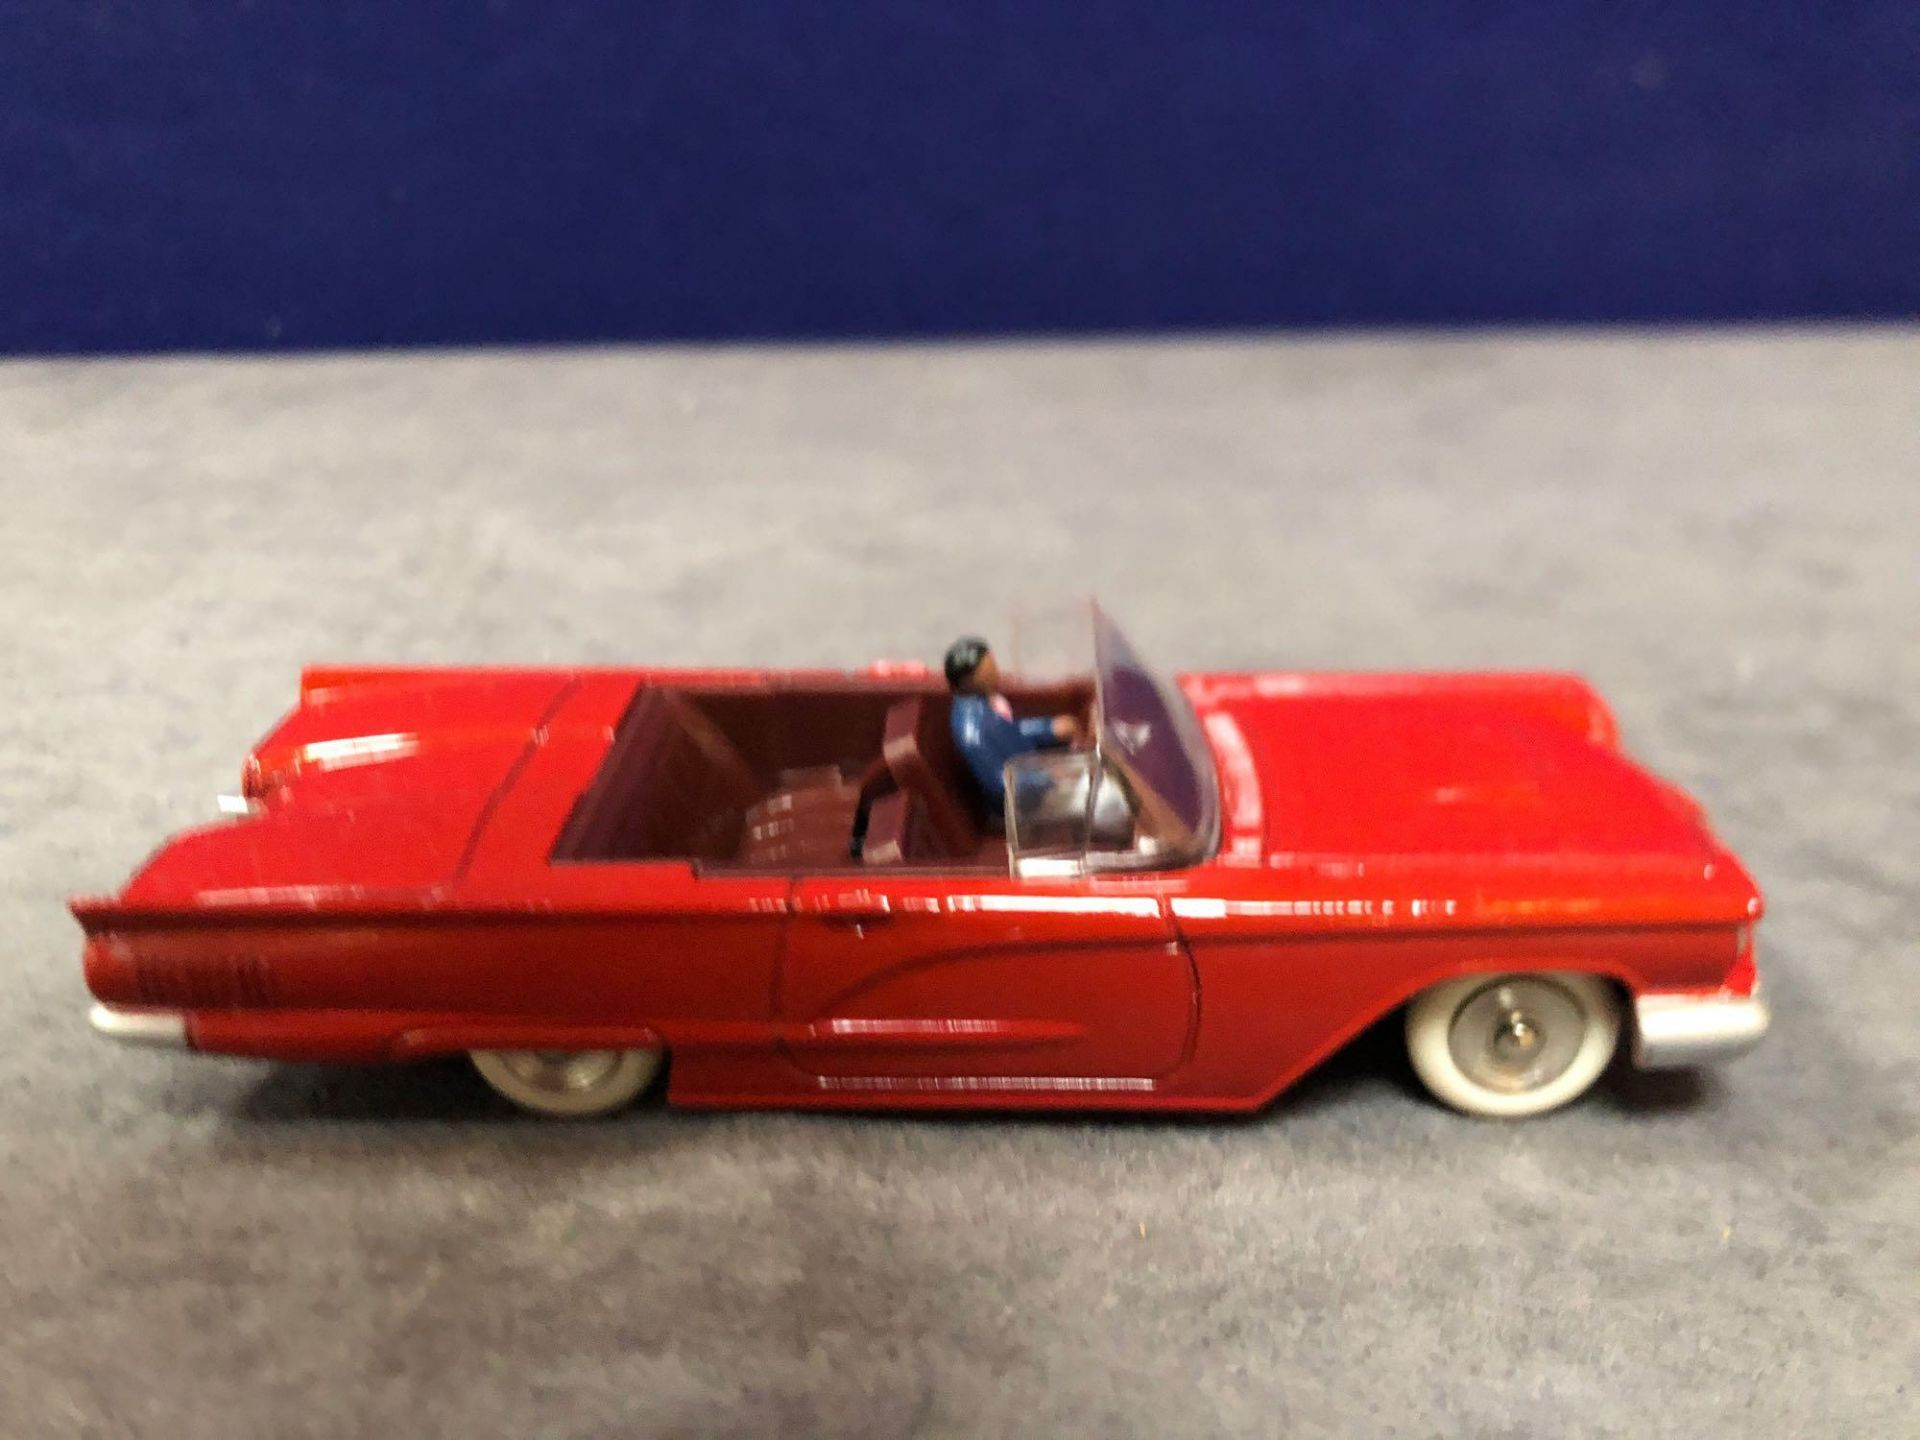 Dinky (Norev Edition)Diecast #555 Ford Thunderbird In Red Mint In Box 1966 - Image 2 of 3